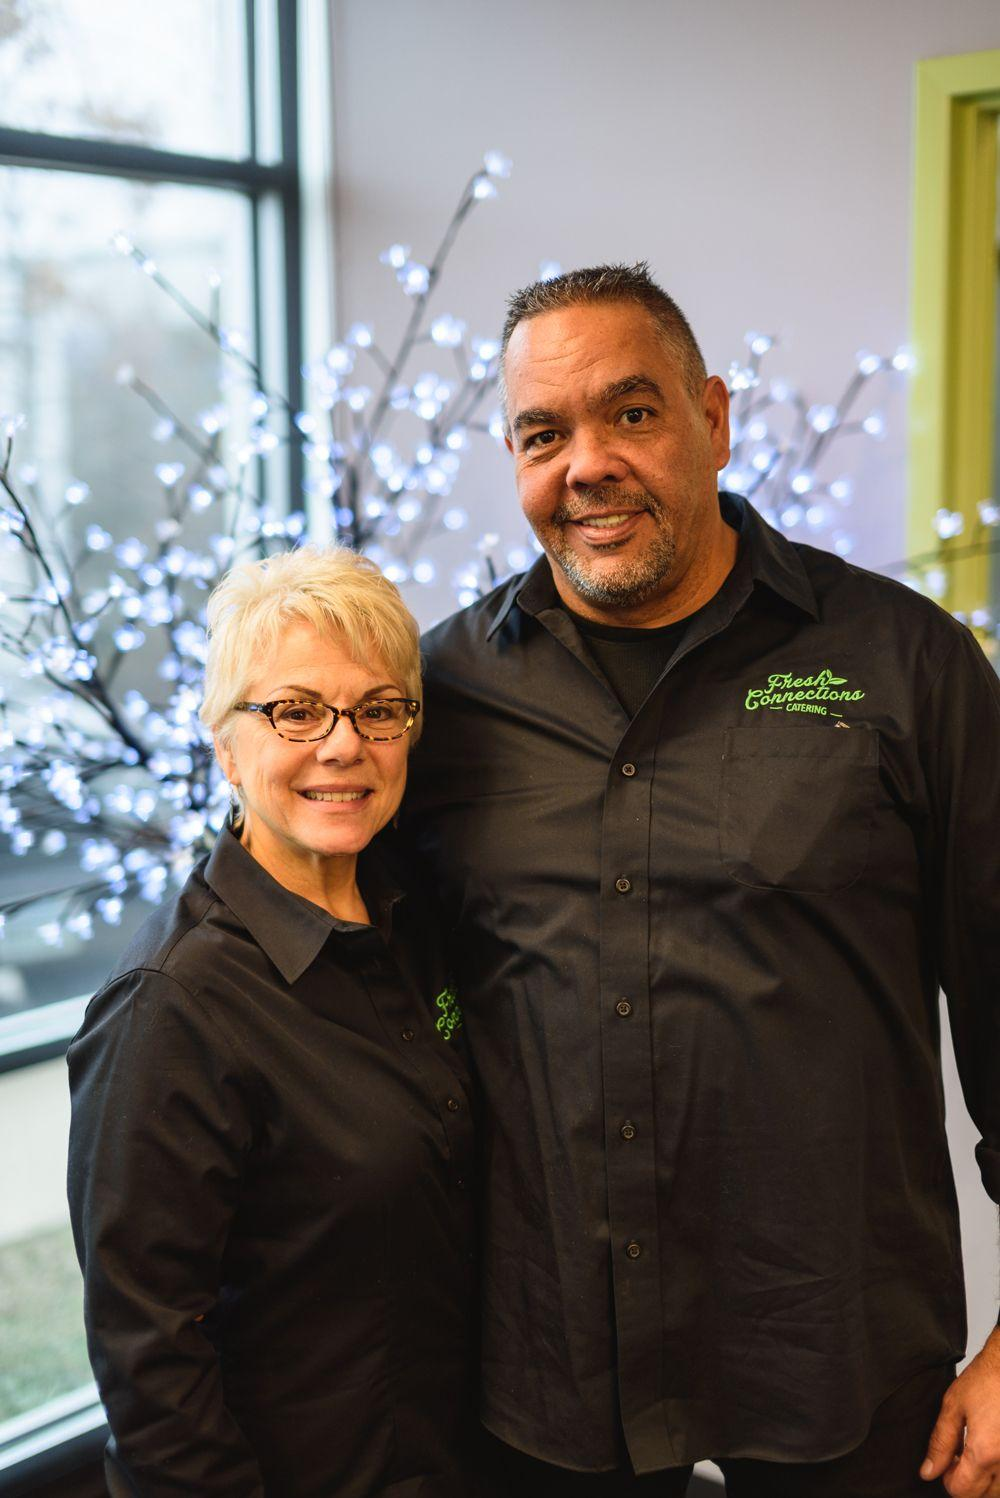 The owners of Fresh Connections Catering providing corporate catering services to Herndon VA